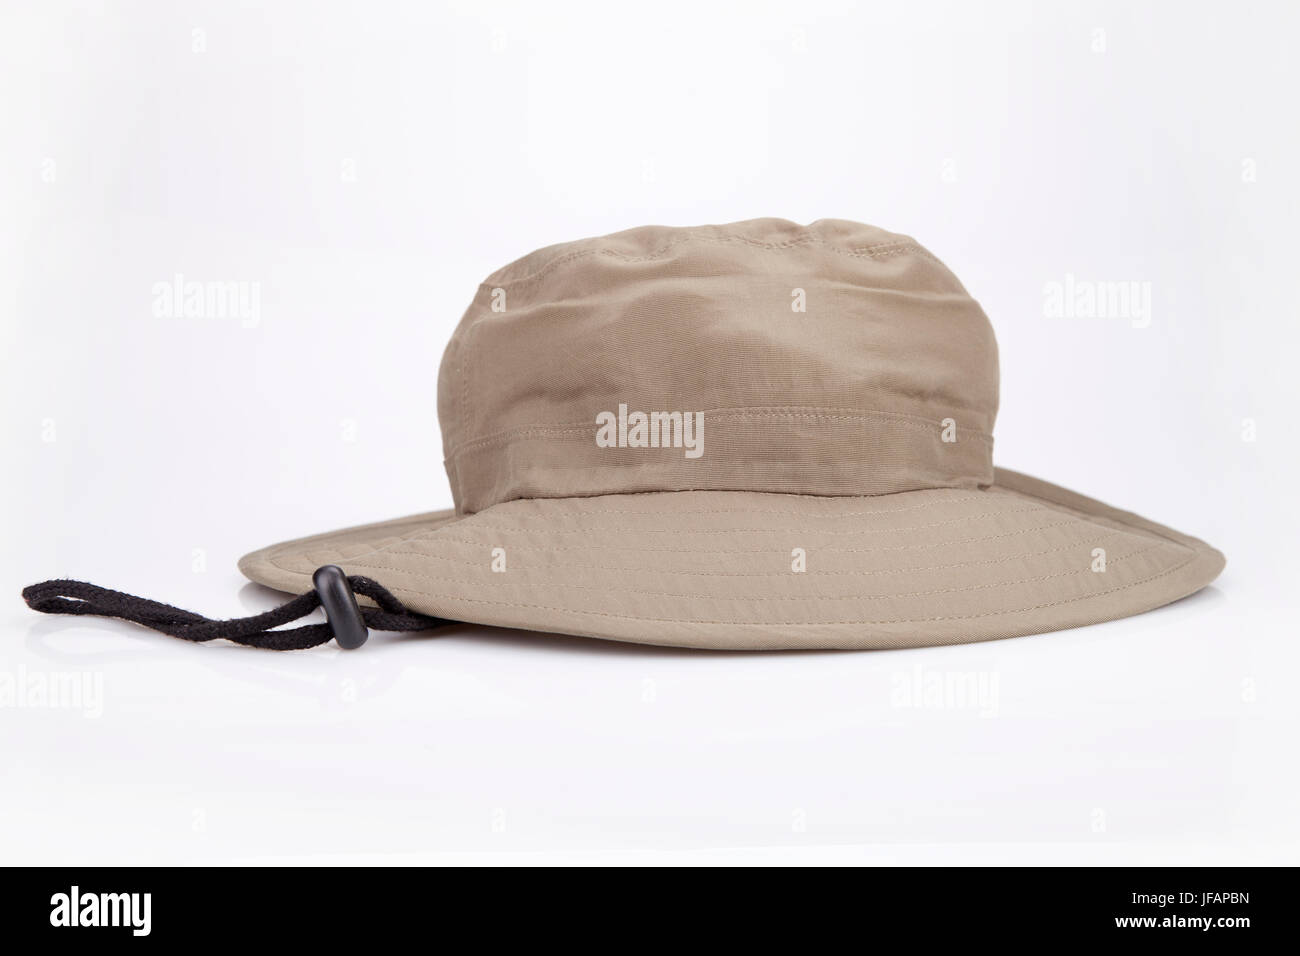 865606ffa Khaki adventure hat on a white surface. Safari hat isolated on white ...